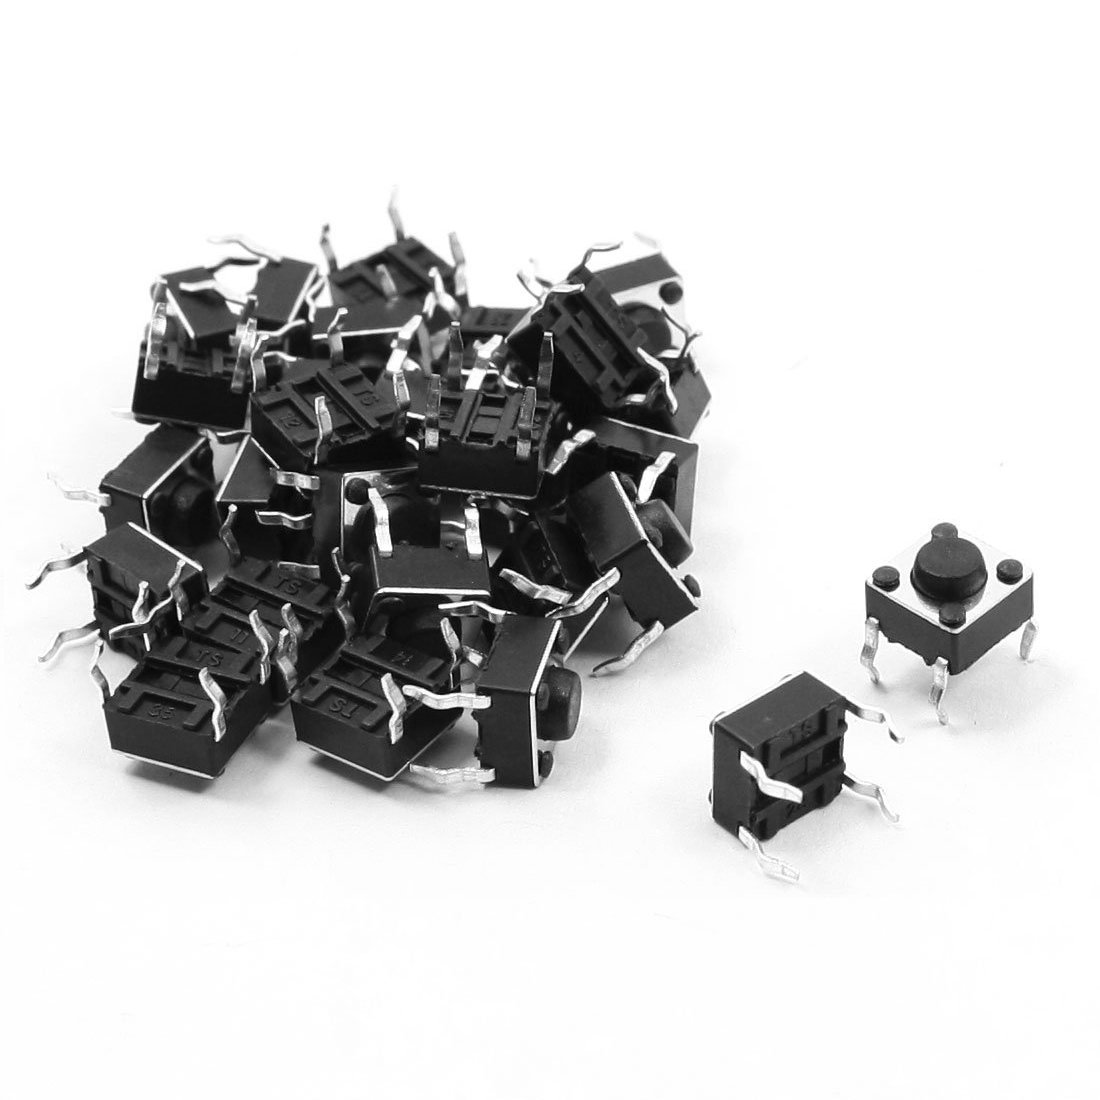 THGS 25pcs Round Pushbutton 4 Pins SMD SMT Momentary Tactile Switch